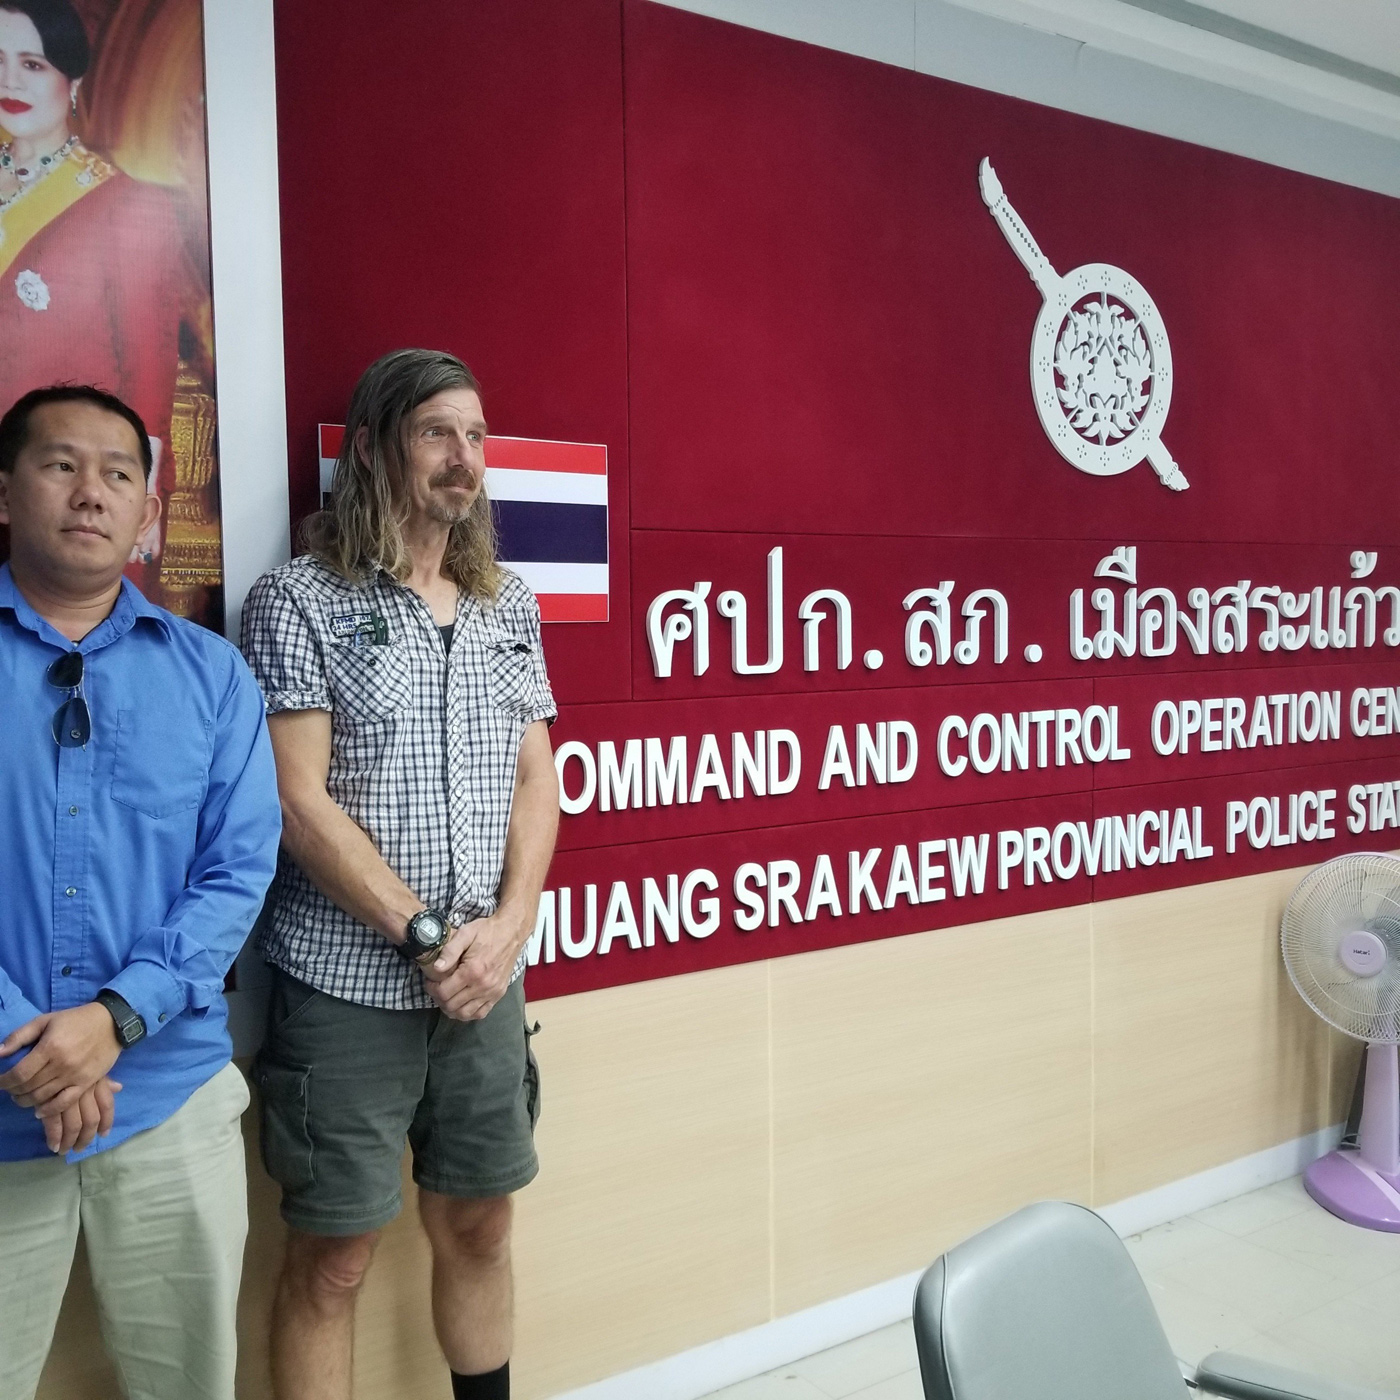 CNRP supporter Daley Uy and his friend Daniel Capka at a Thai police station in November 2019.